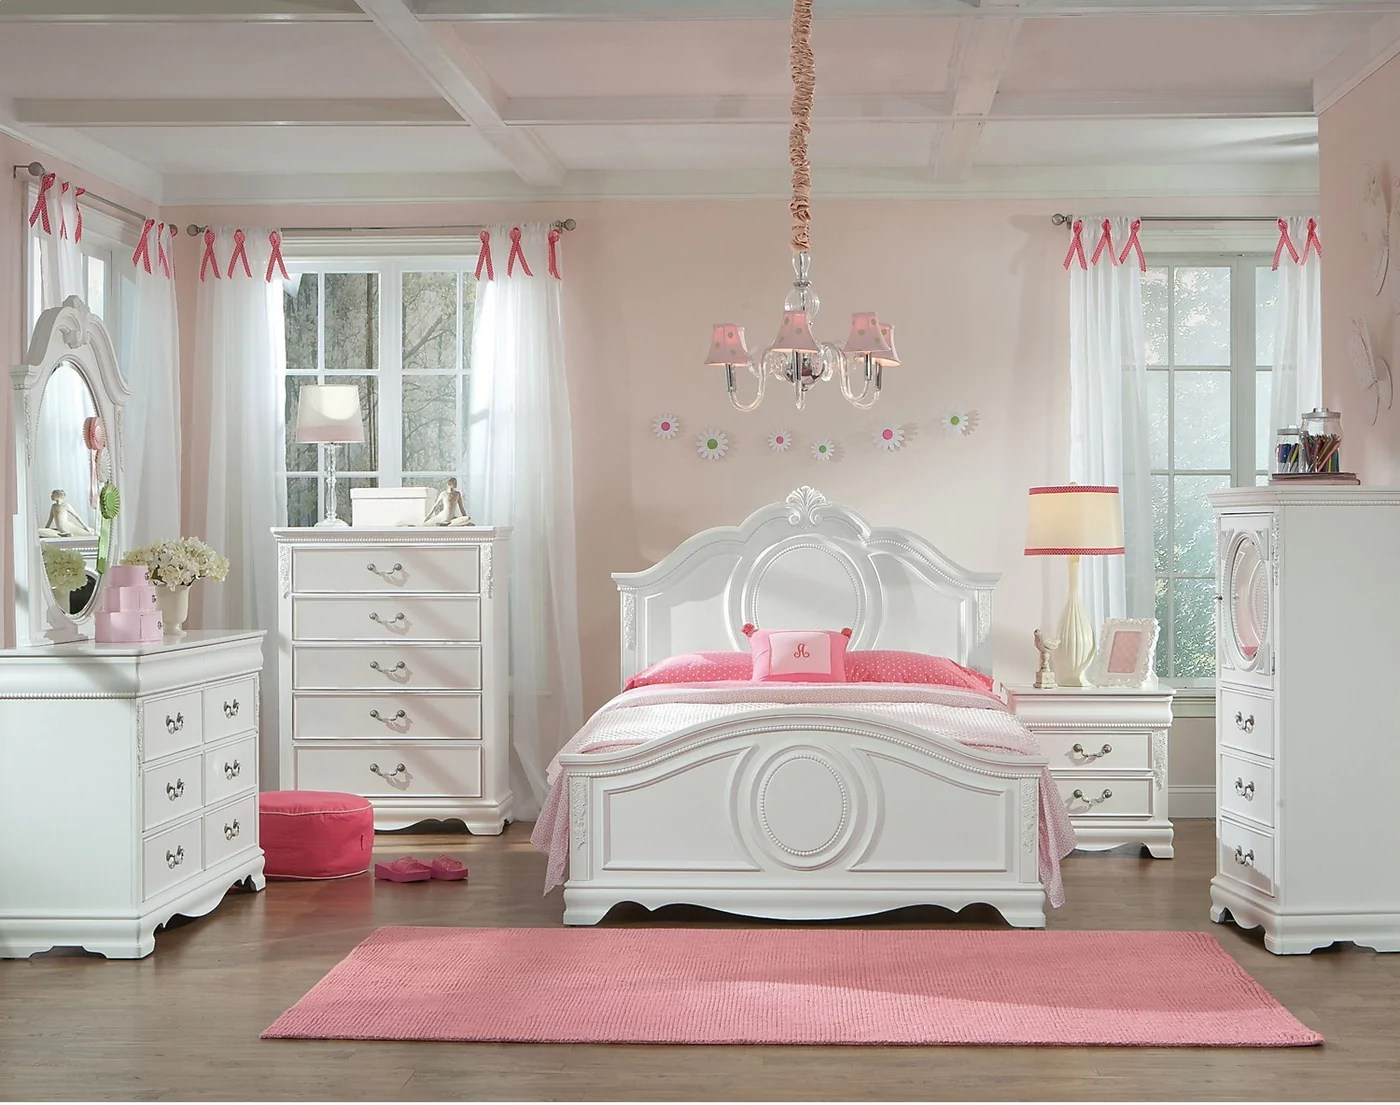 Meuble Aubaine Set De Chambre 6 Piece Jessica White Finish Full Bedroom